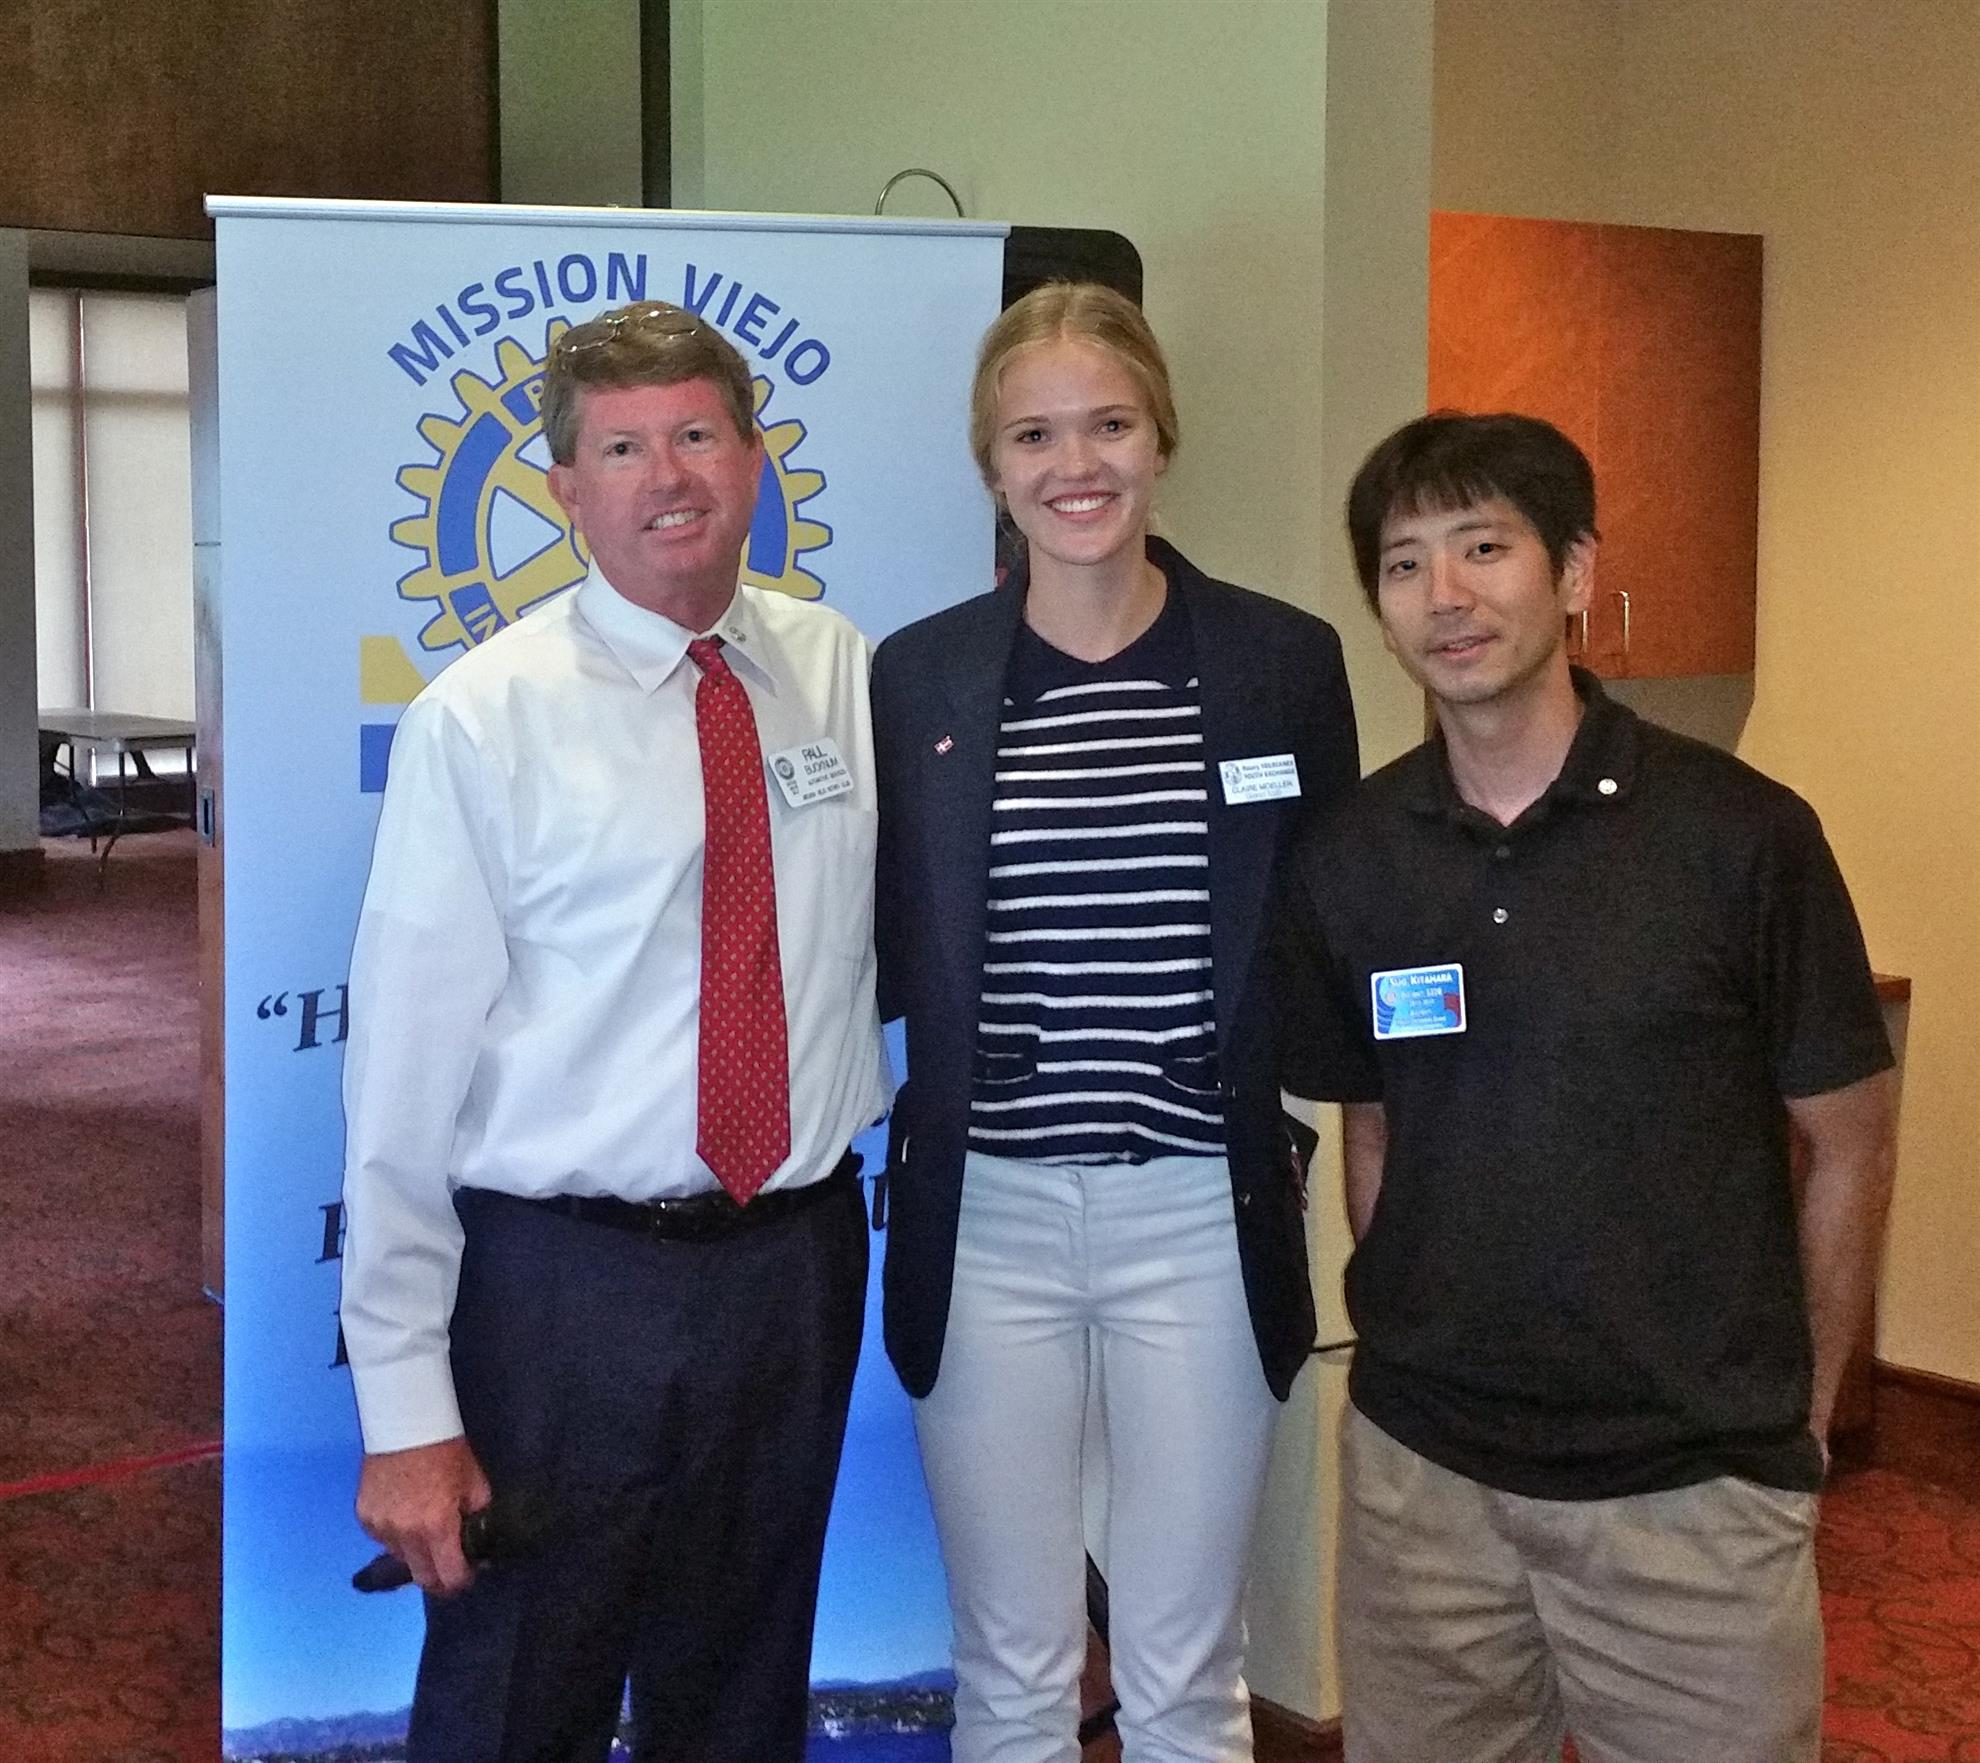 Ms. Claire Moeller, Rotary Youth Exchange Student